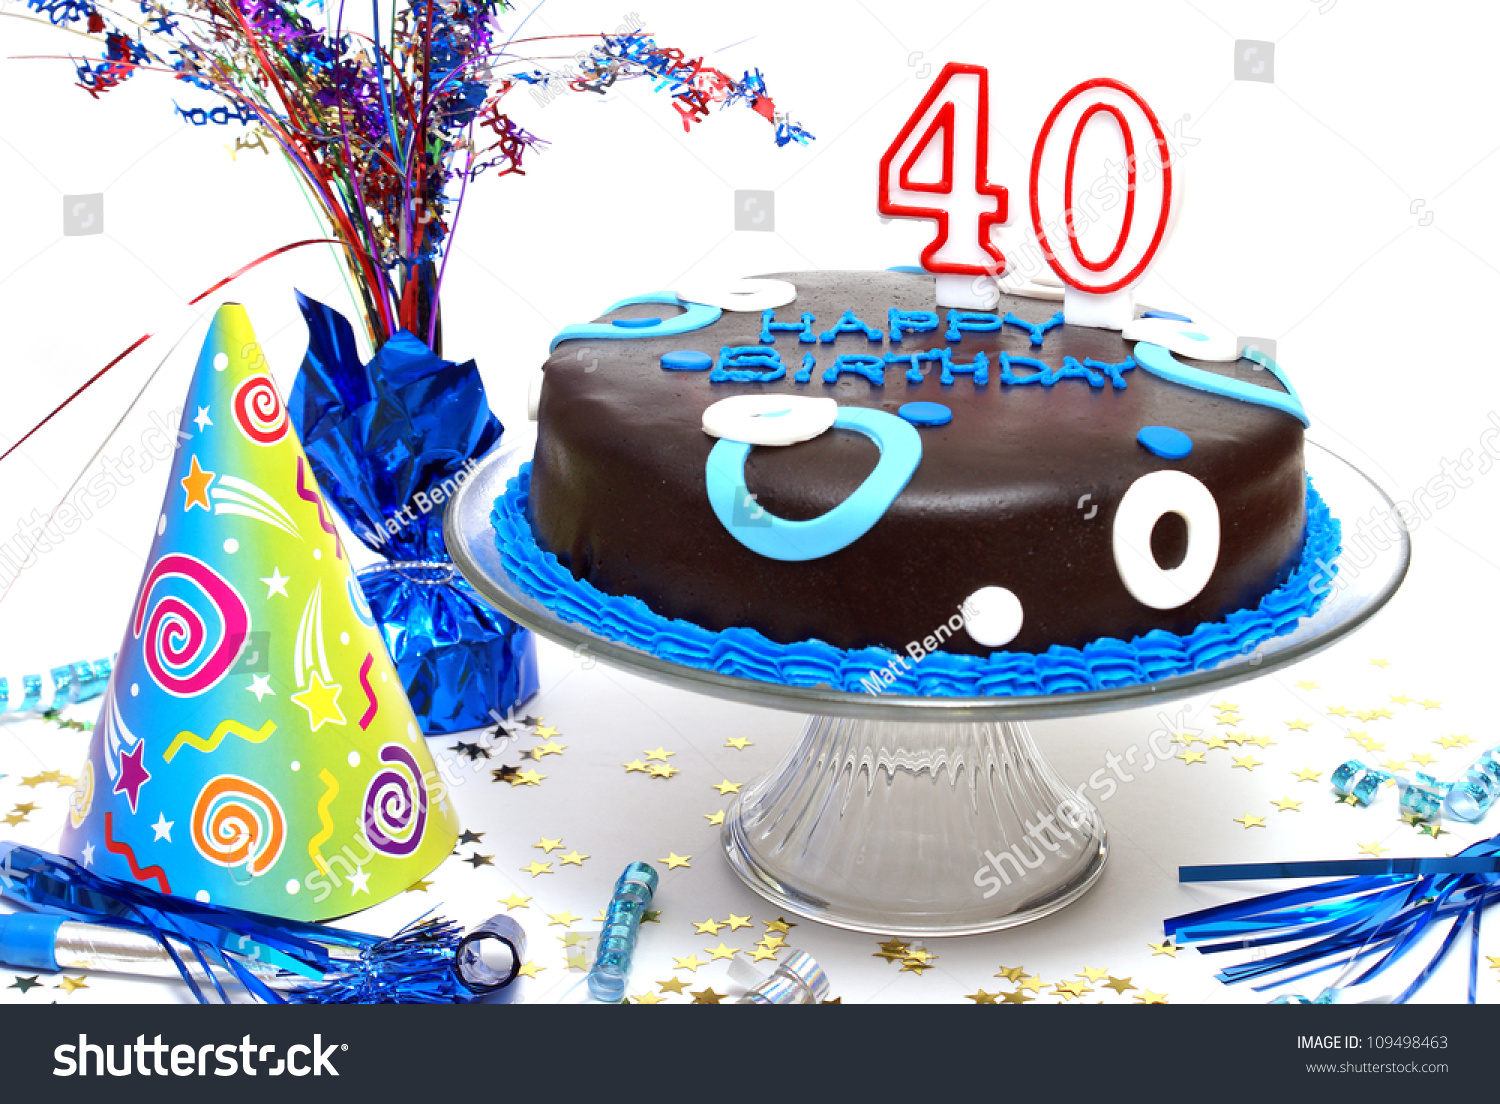 A Birthday Cake For Someone At The Big 40